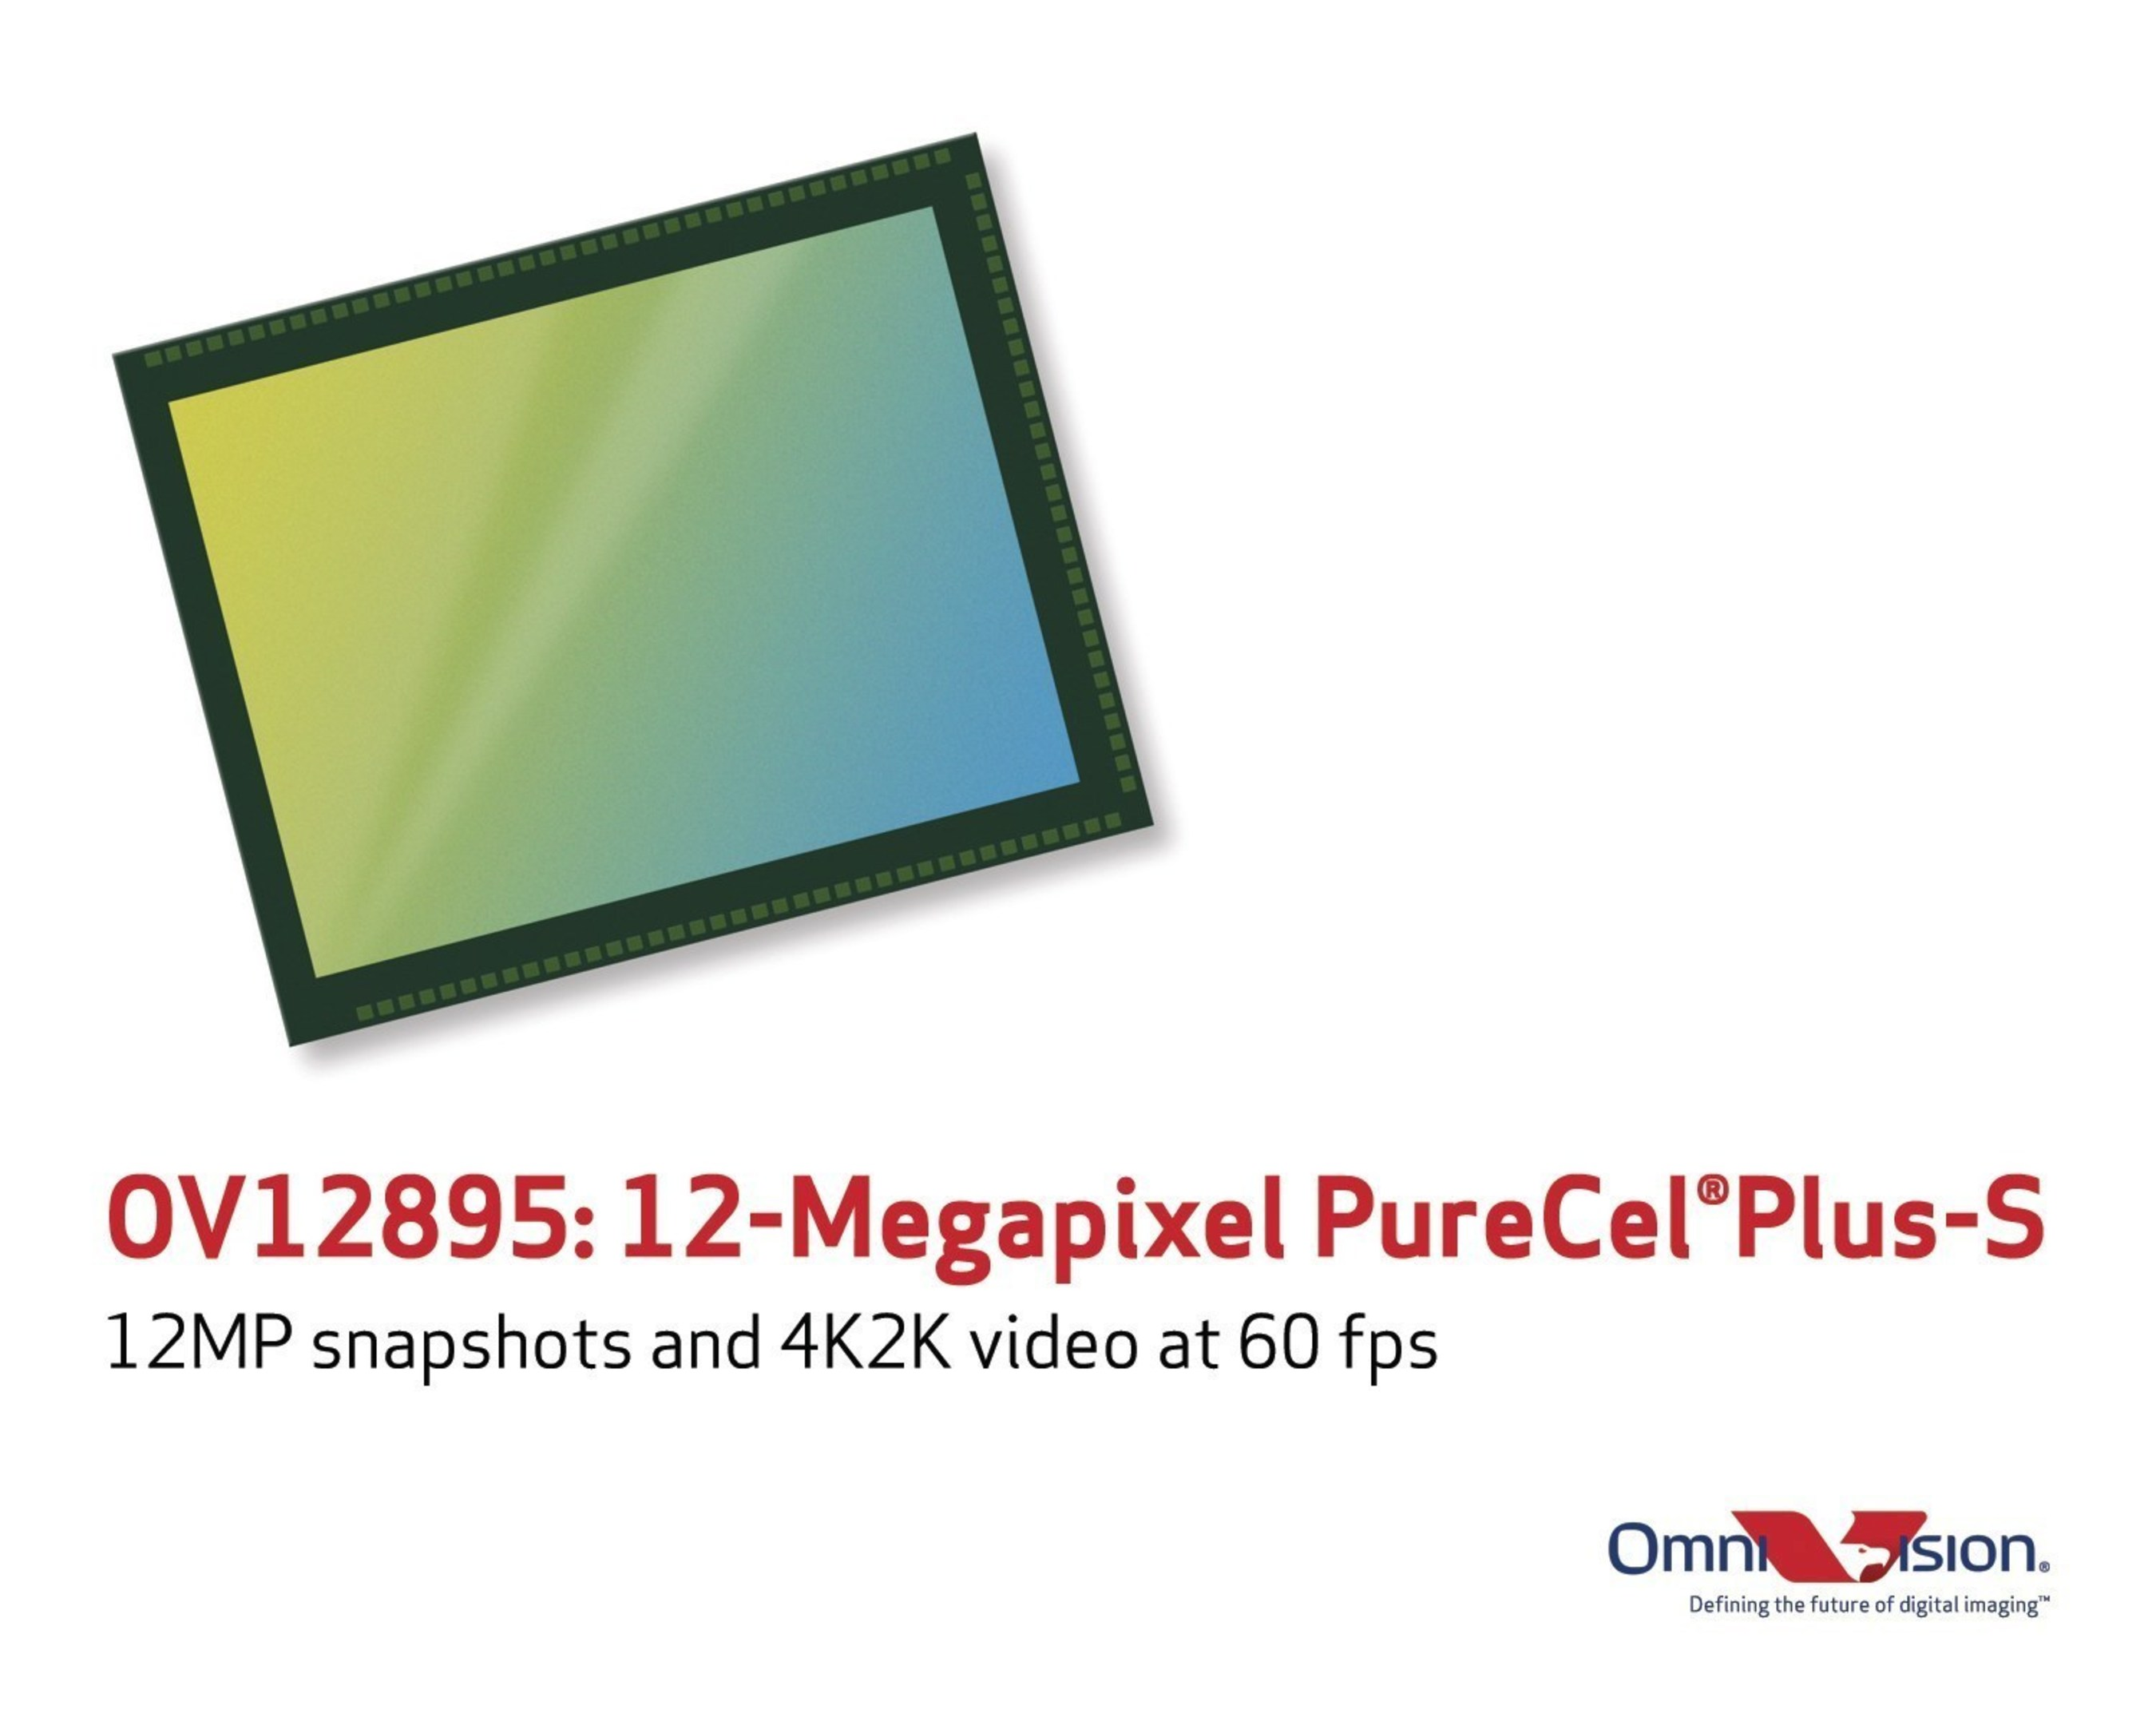 OmniVision Launches 12-Megapixel PureCel'Plus-S Sensor for High-End Consumer Drones and Action Cameras